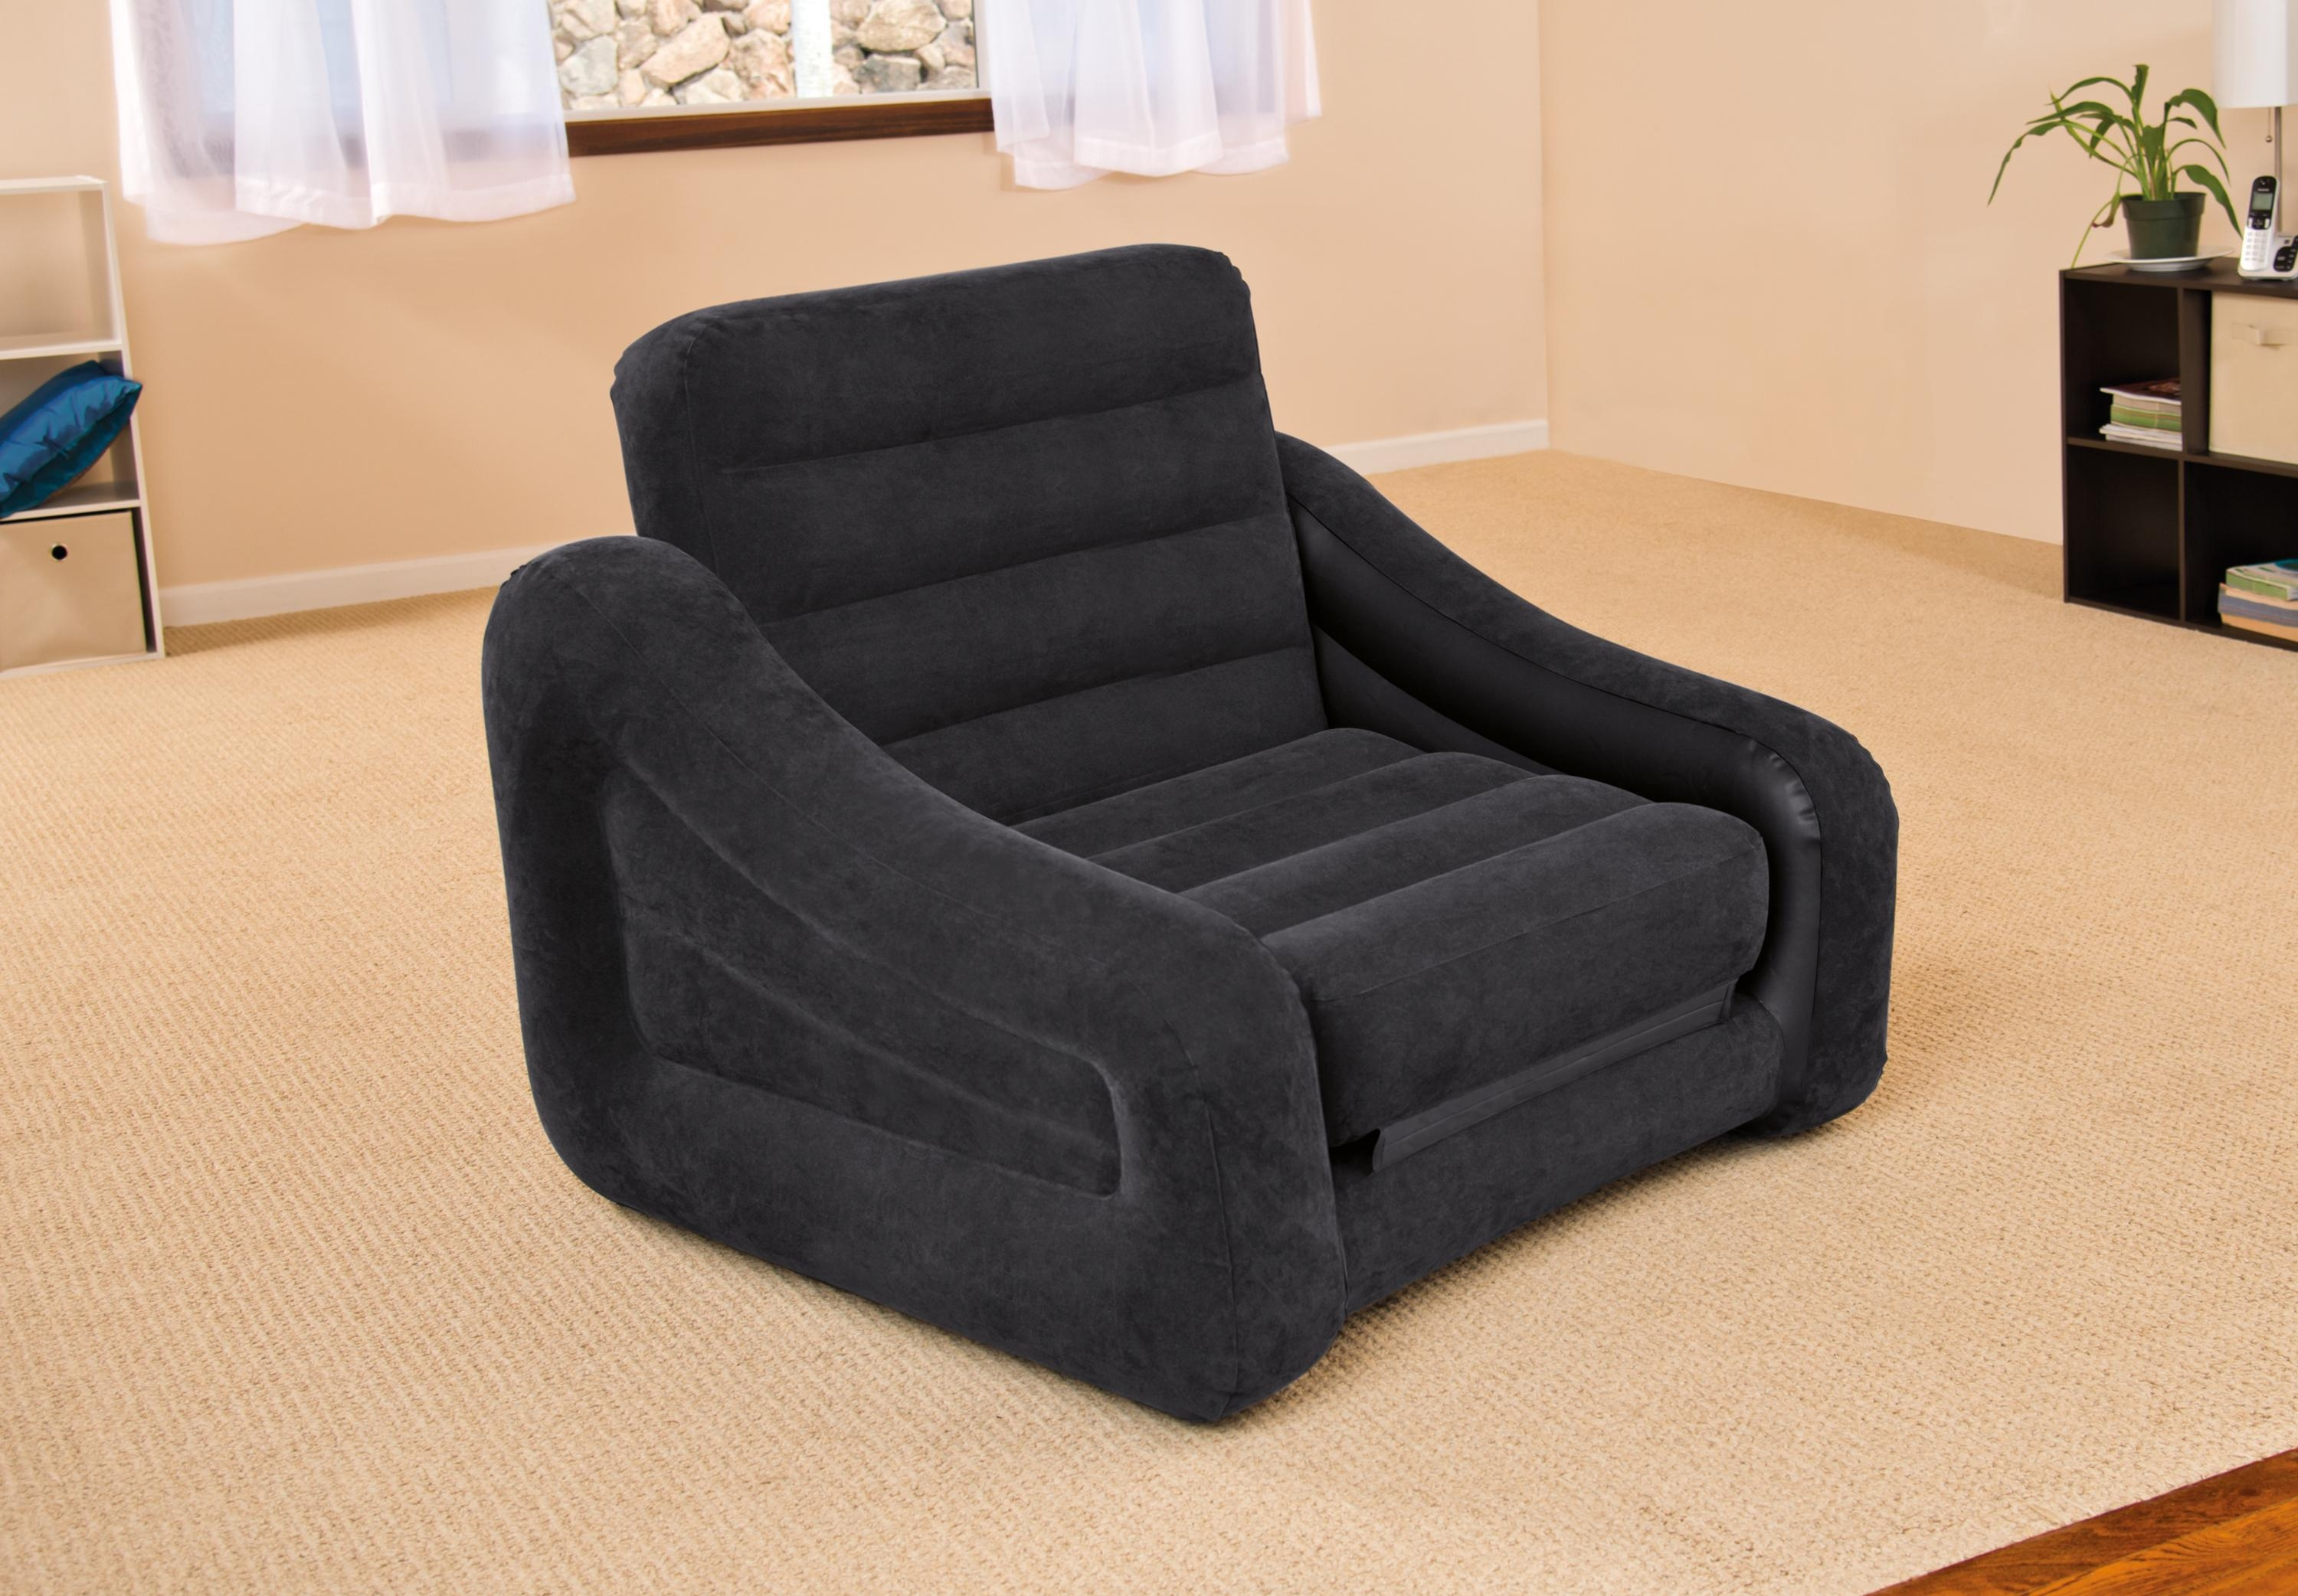 Intex Inflatable Air Chair With Pull Out Twin Bed Mattress Sleeper Throughout Intex Queen Sleeper Sofas (View 20 of 20)